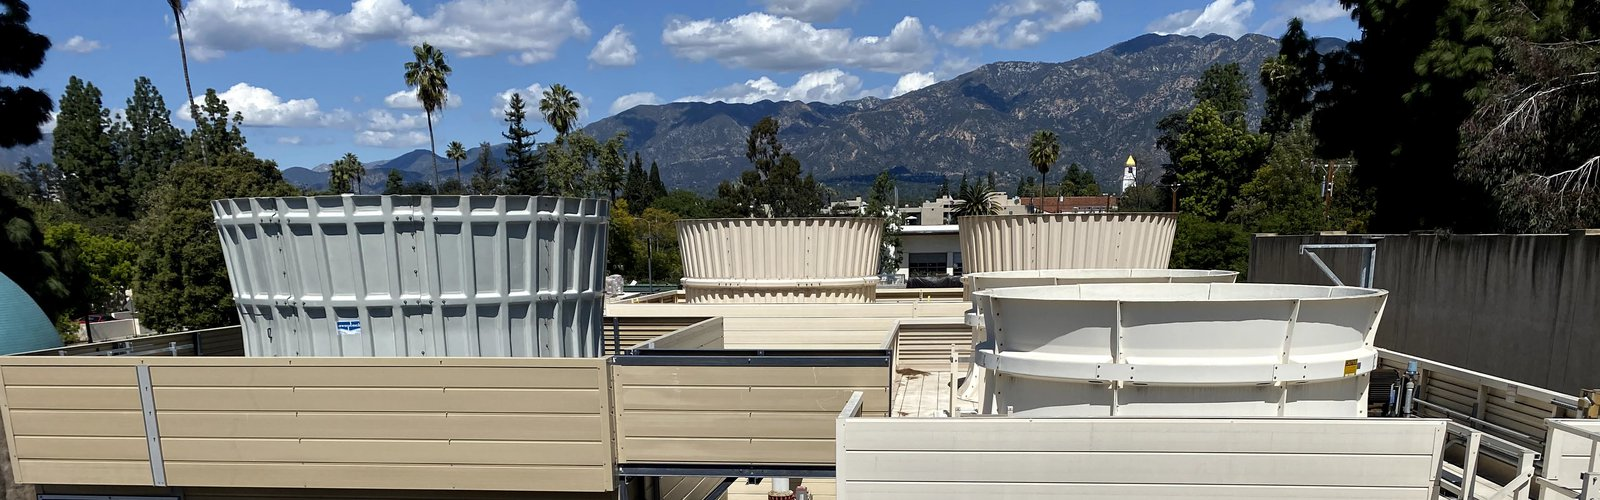 Utility plant under construction on Caltech campus at the foothills of the San Gabriel mountains